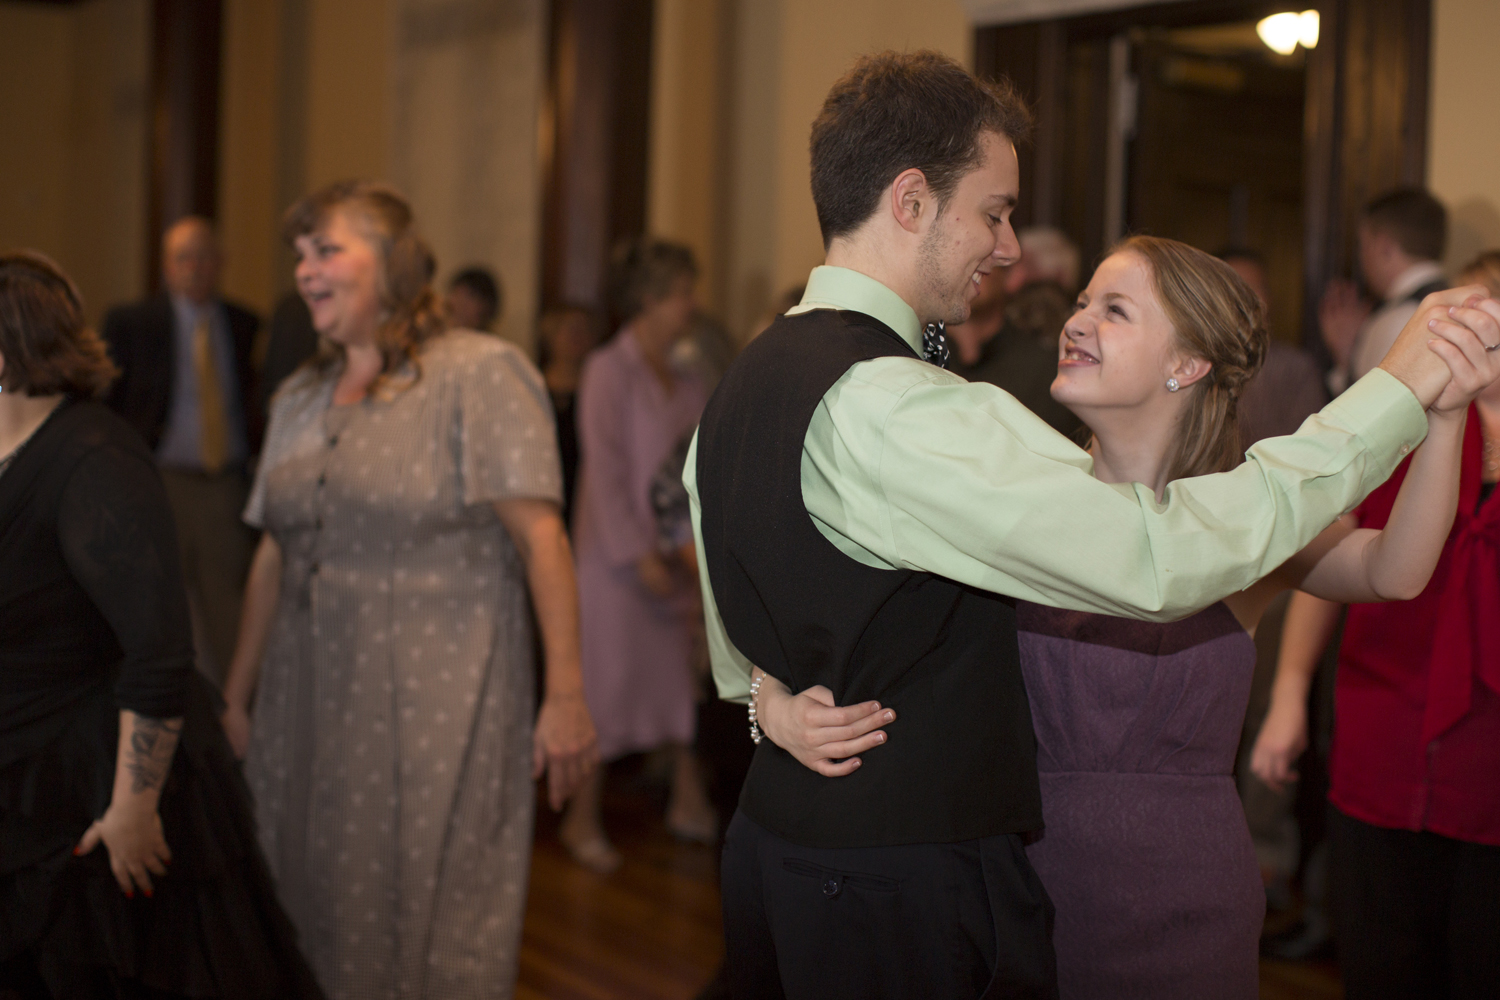 Wedding guests dance at reception